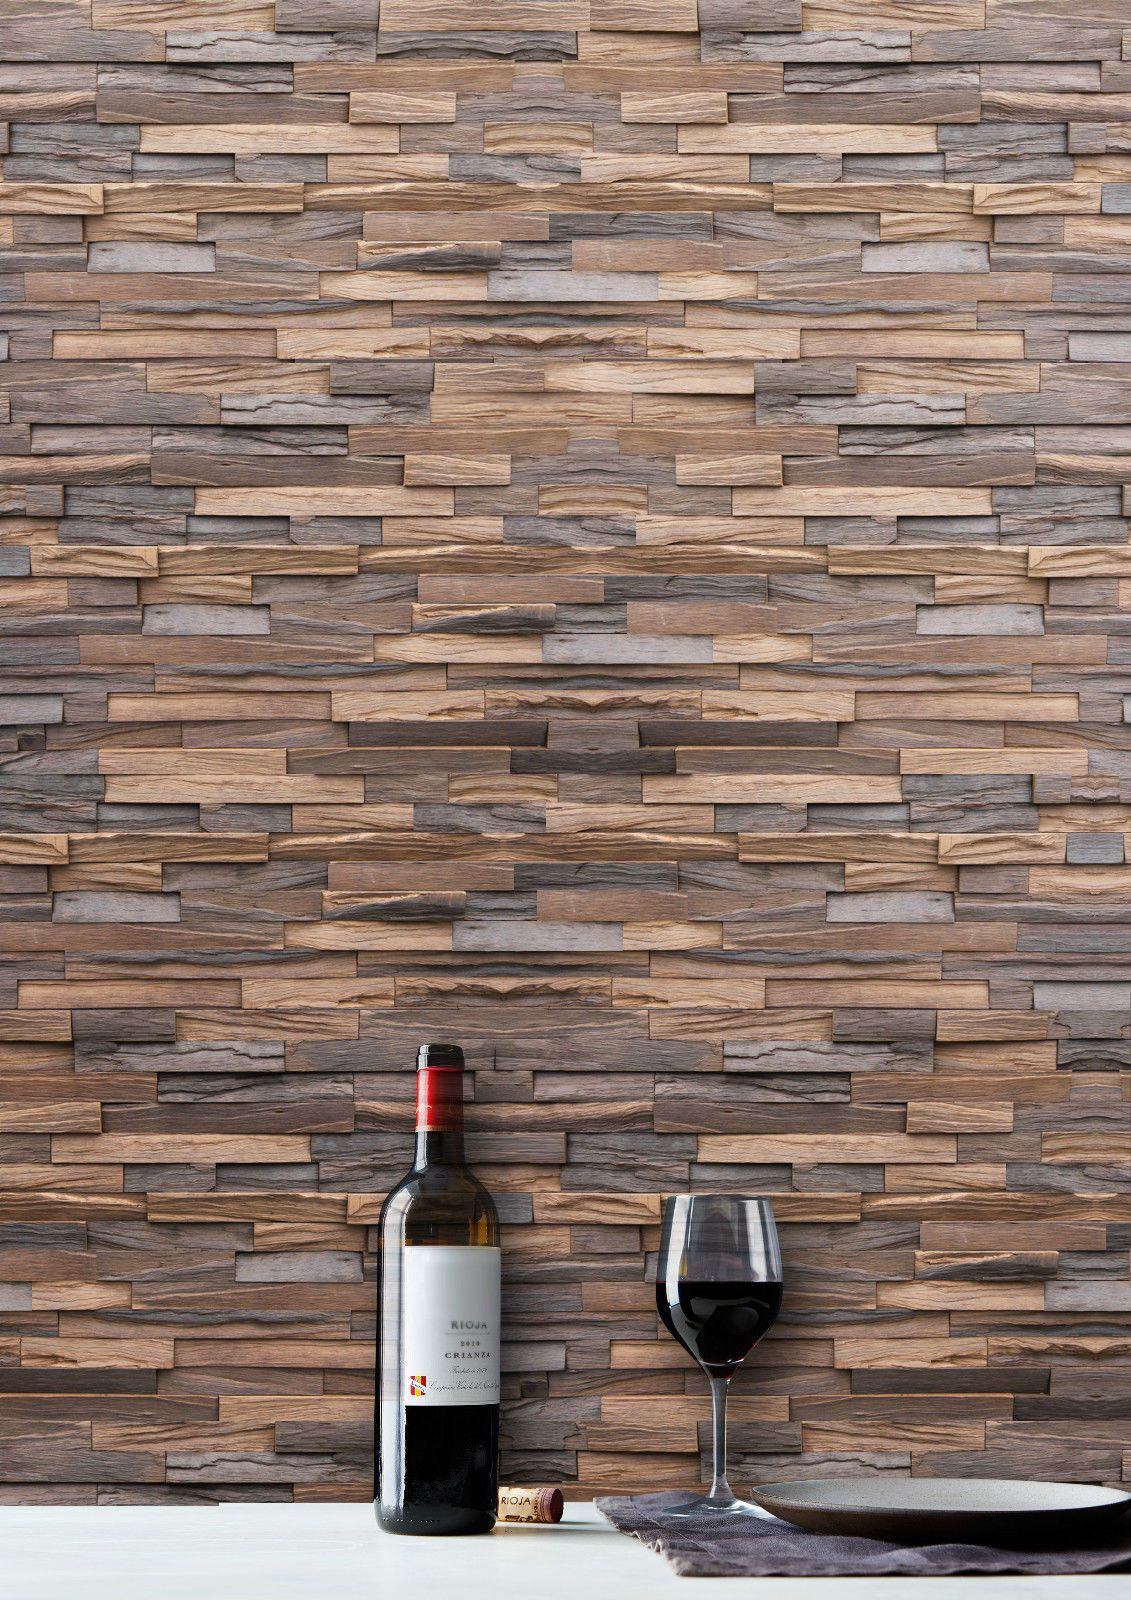 Heartwood Timber Wall Cladding Tiles Slips Wall